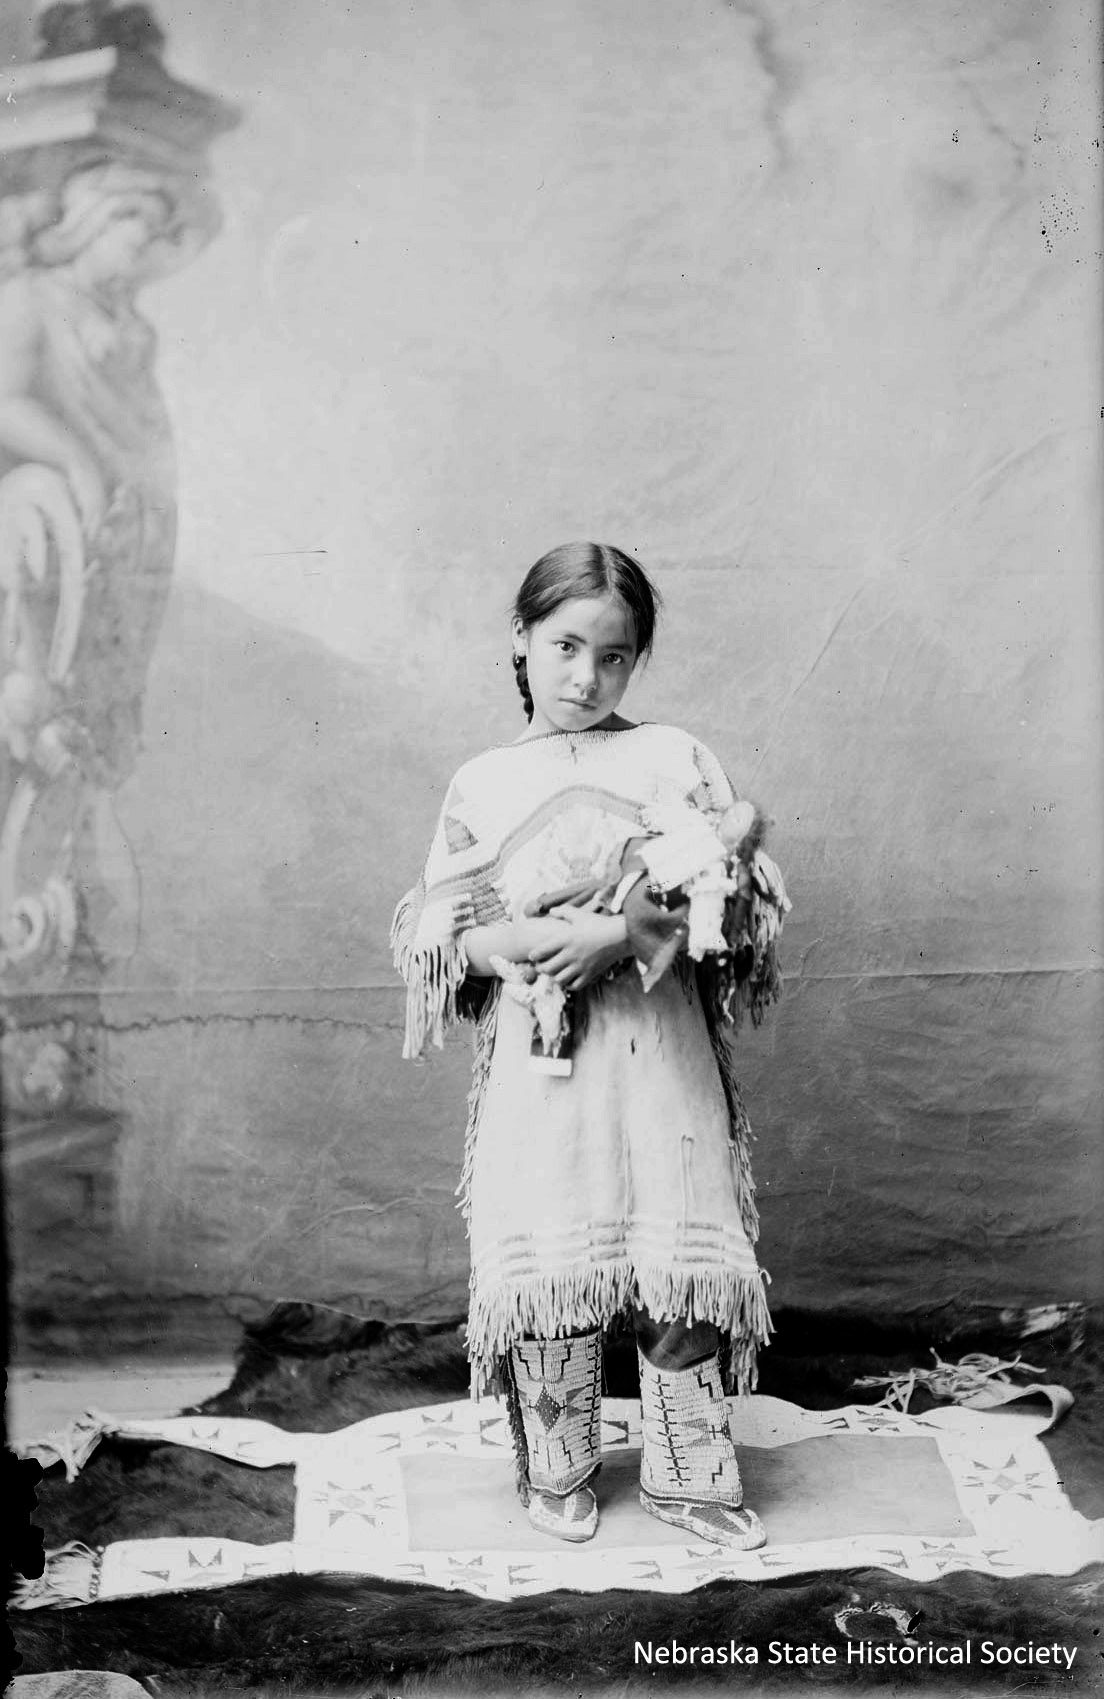 Katie Roubideaux with doll [RG2969-2-165a]